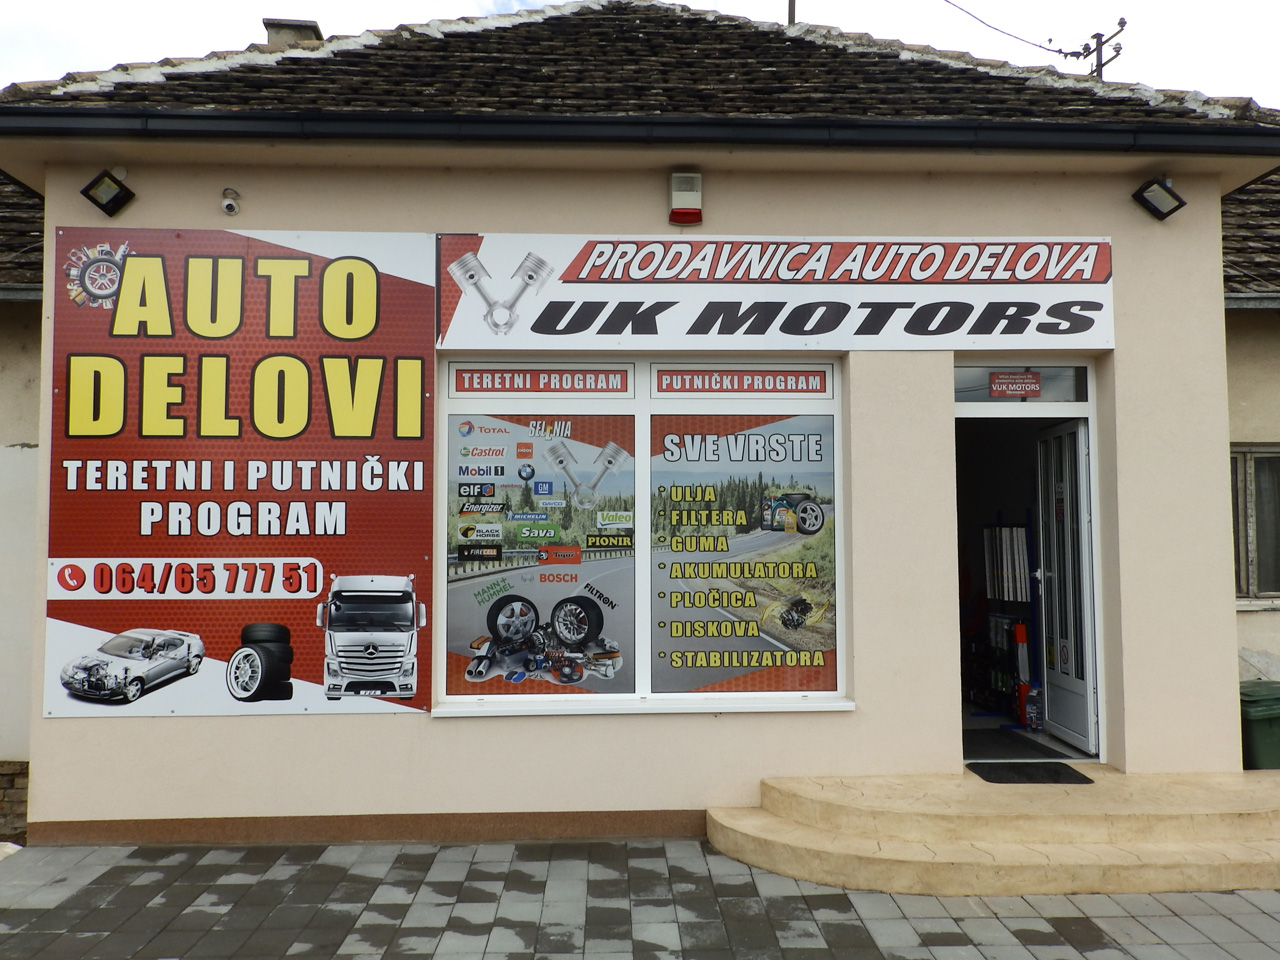 CAR PARTS VUK MOTORS Replacement parts Beograd